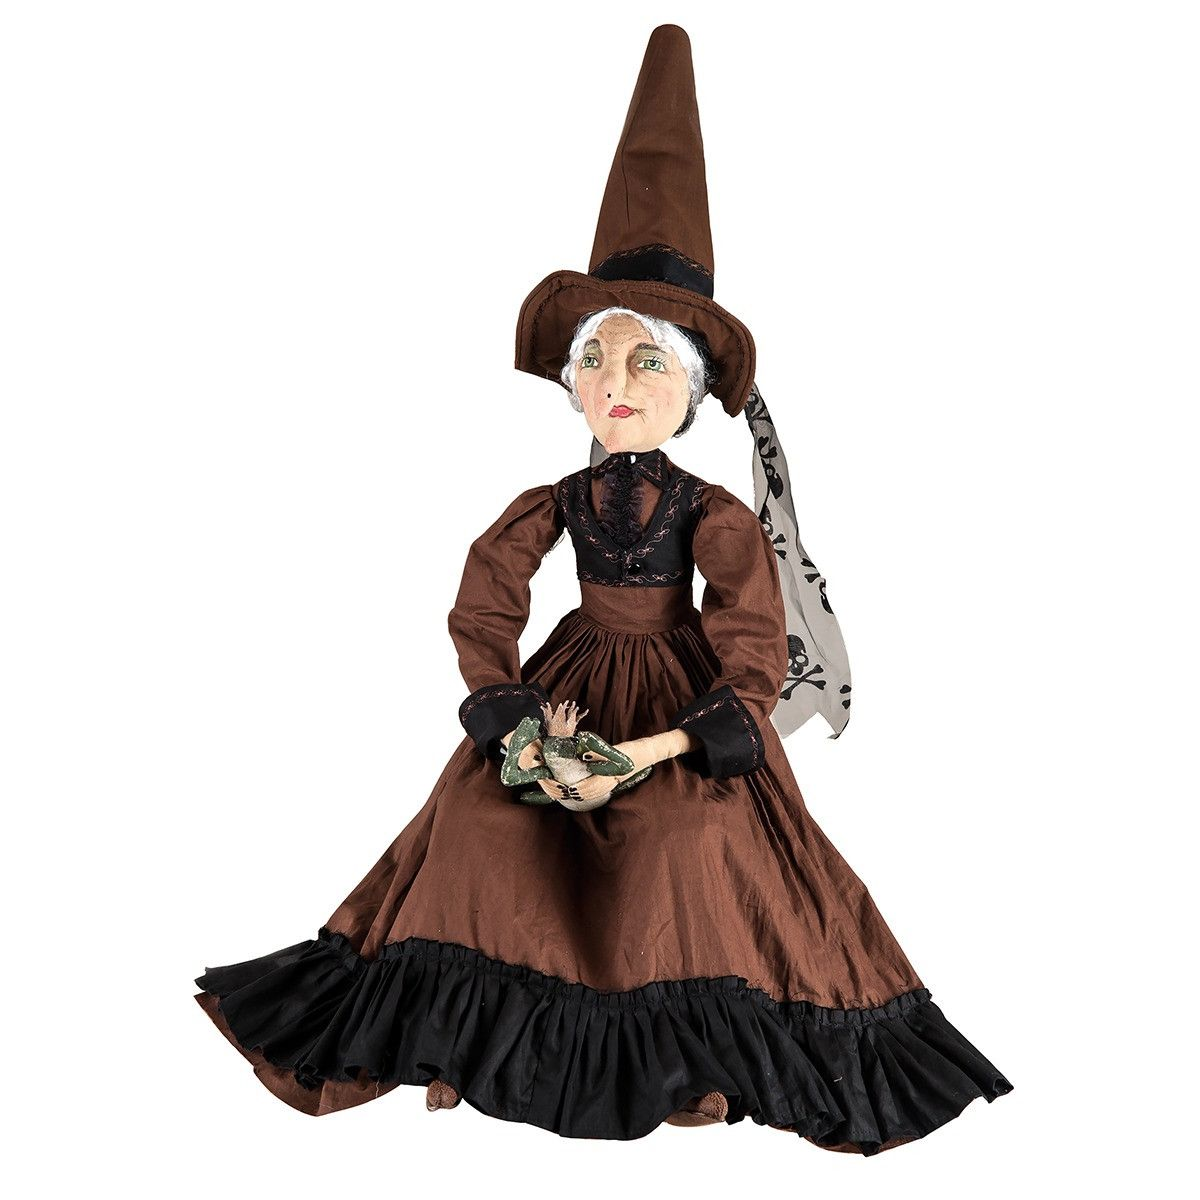 Myrtle Witch with Frog Prince | Witches, Frogs and Dolls